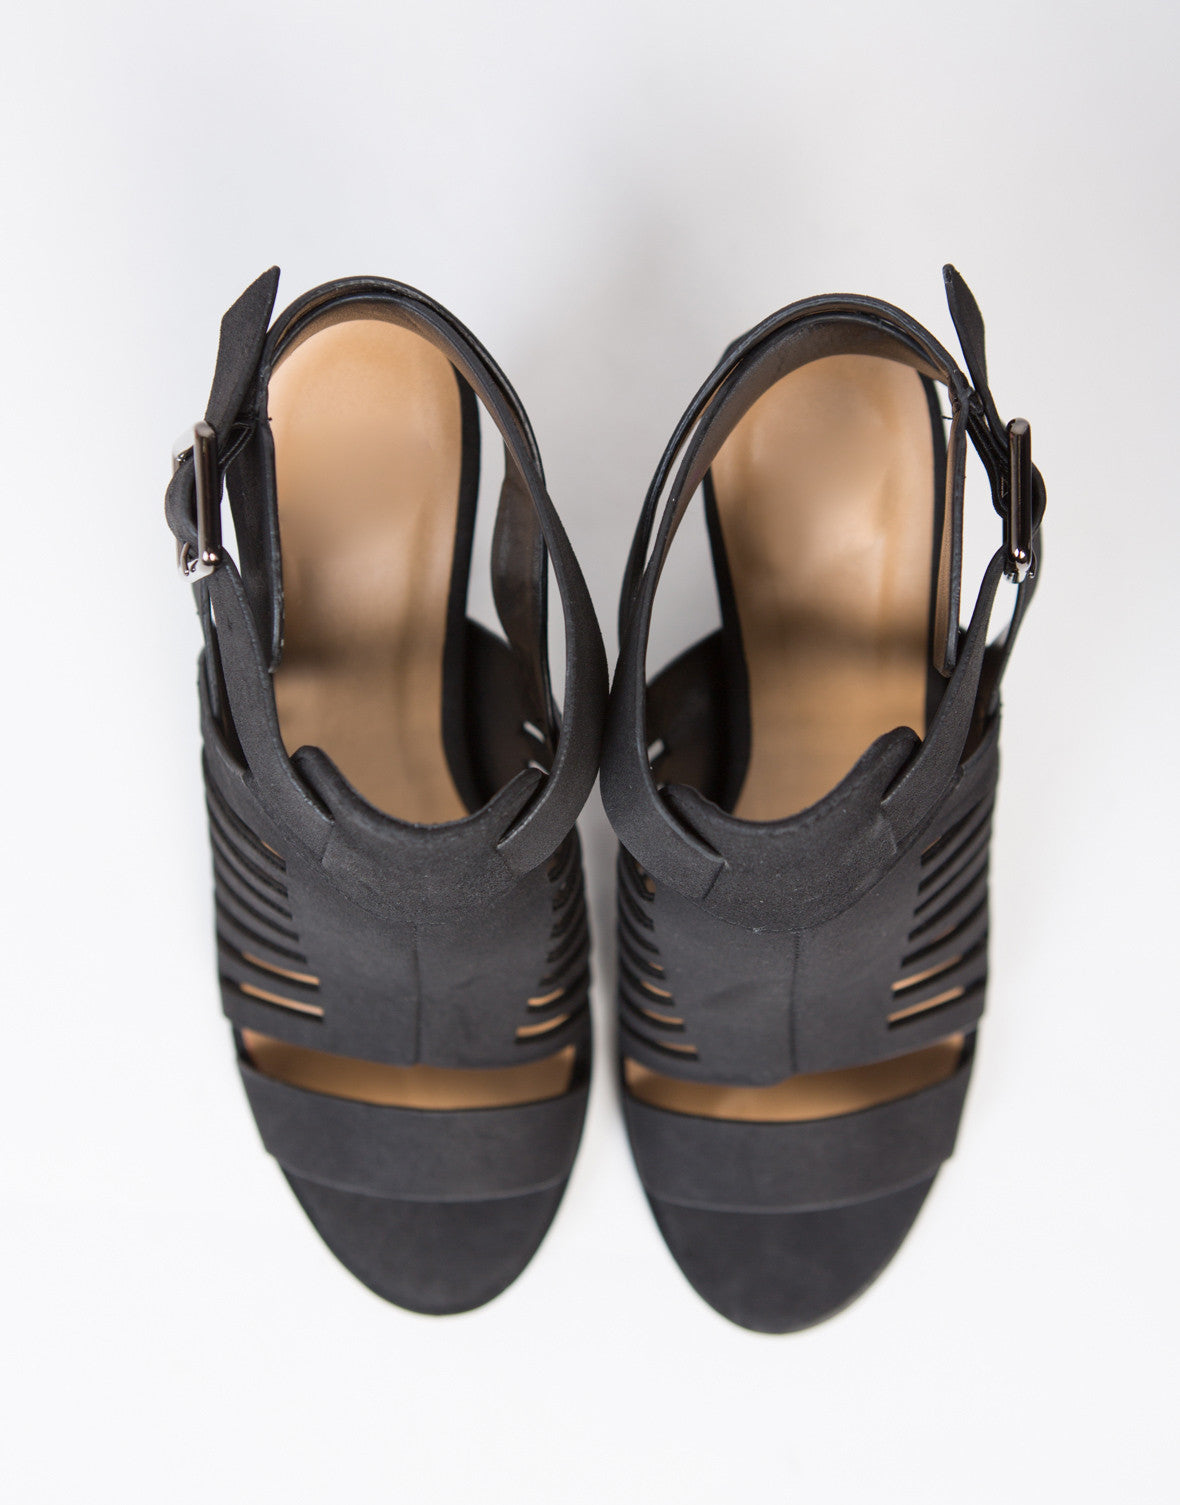 Buckle Strap Caged Sandals